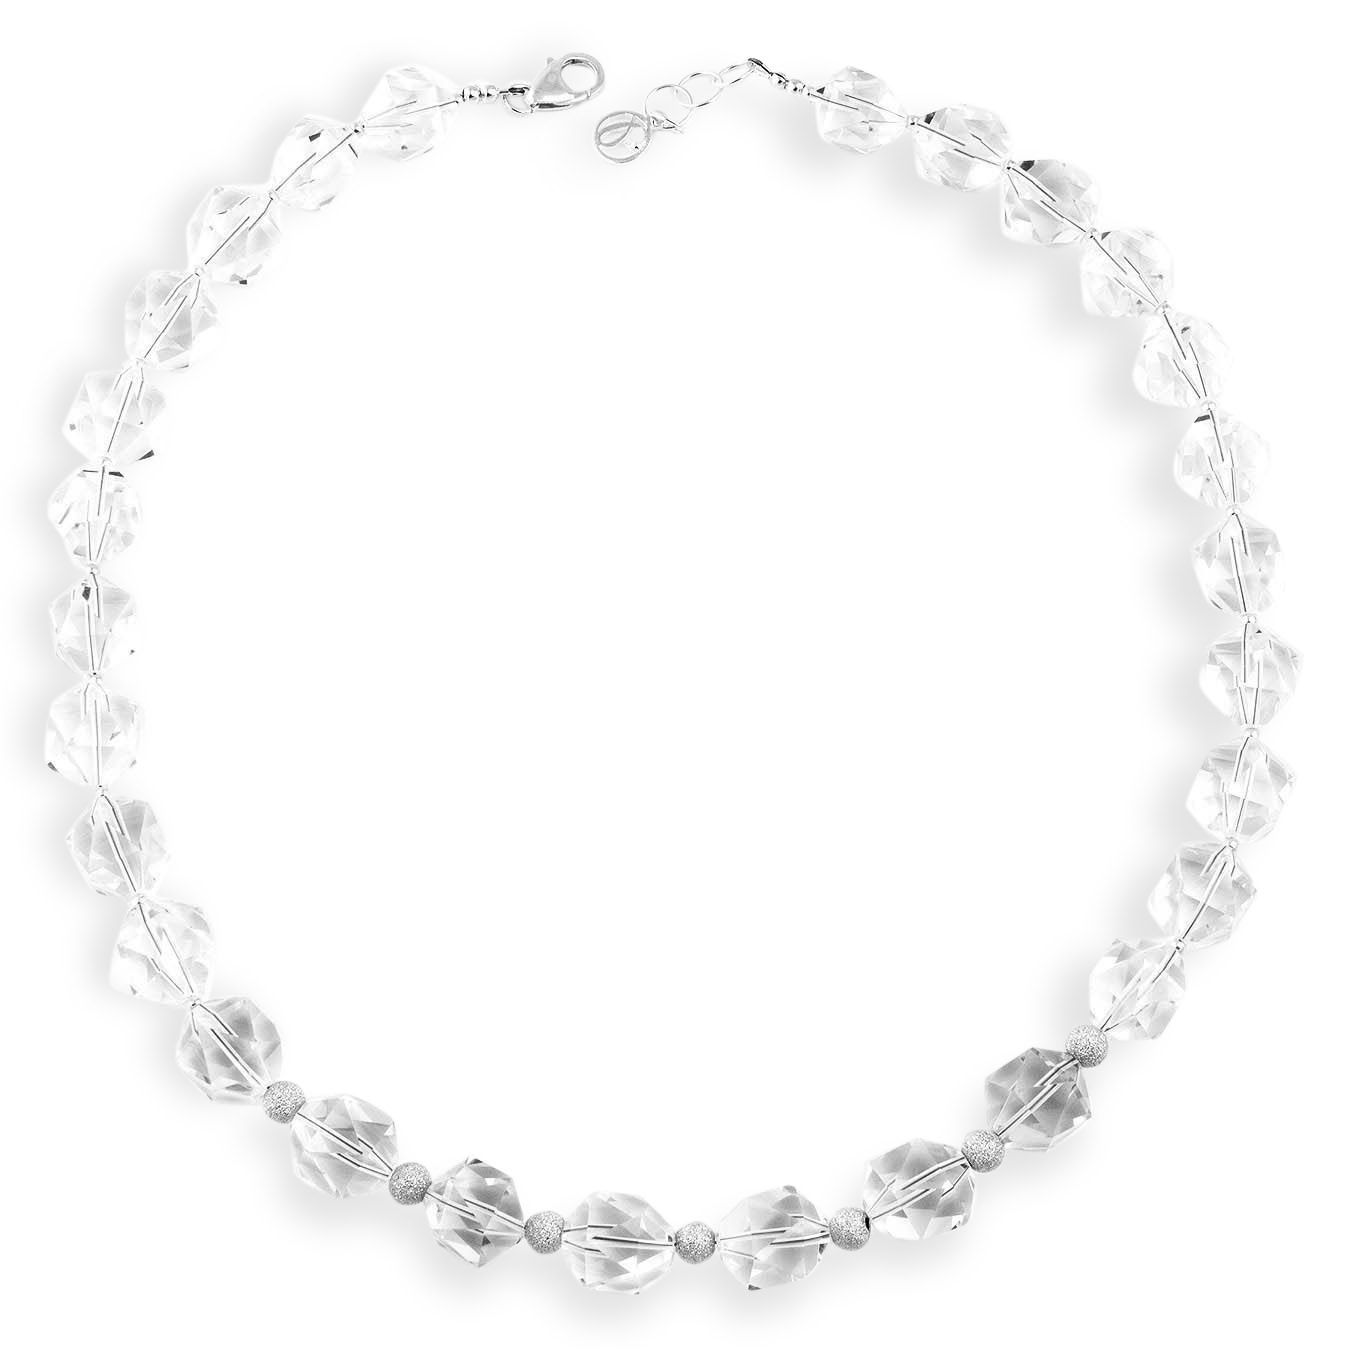 Handmade choker jewelry necklace made of clear quartz and silver beads